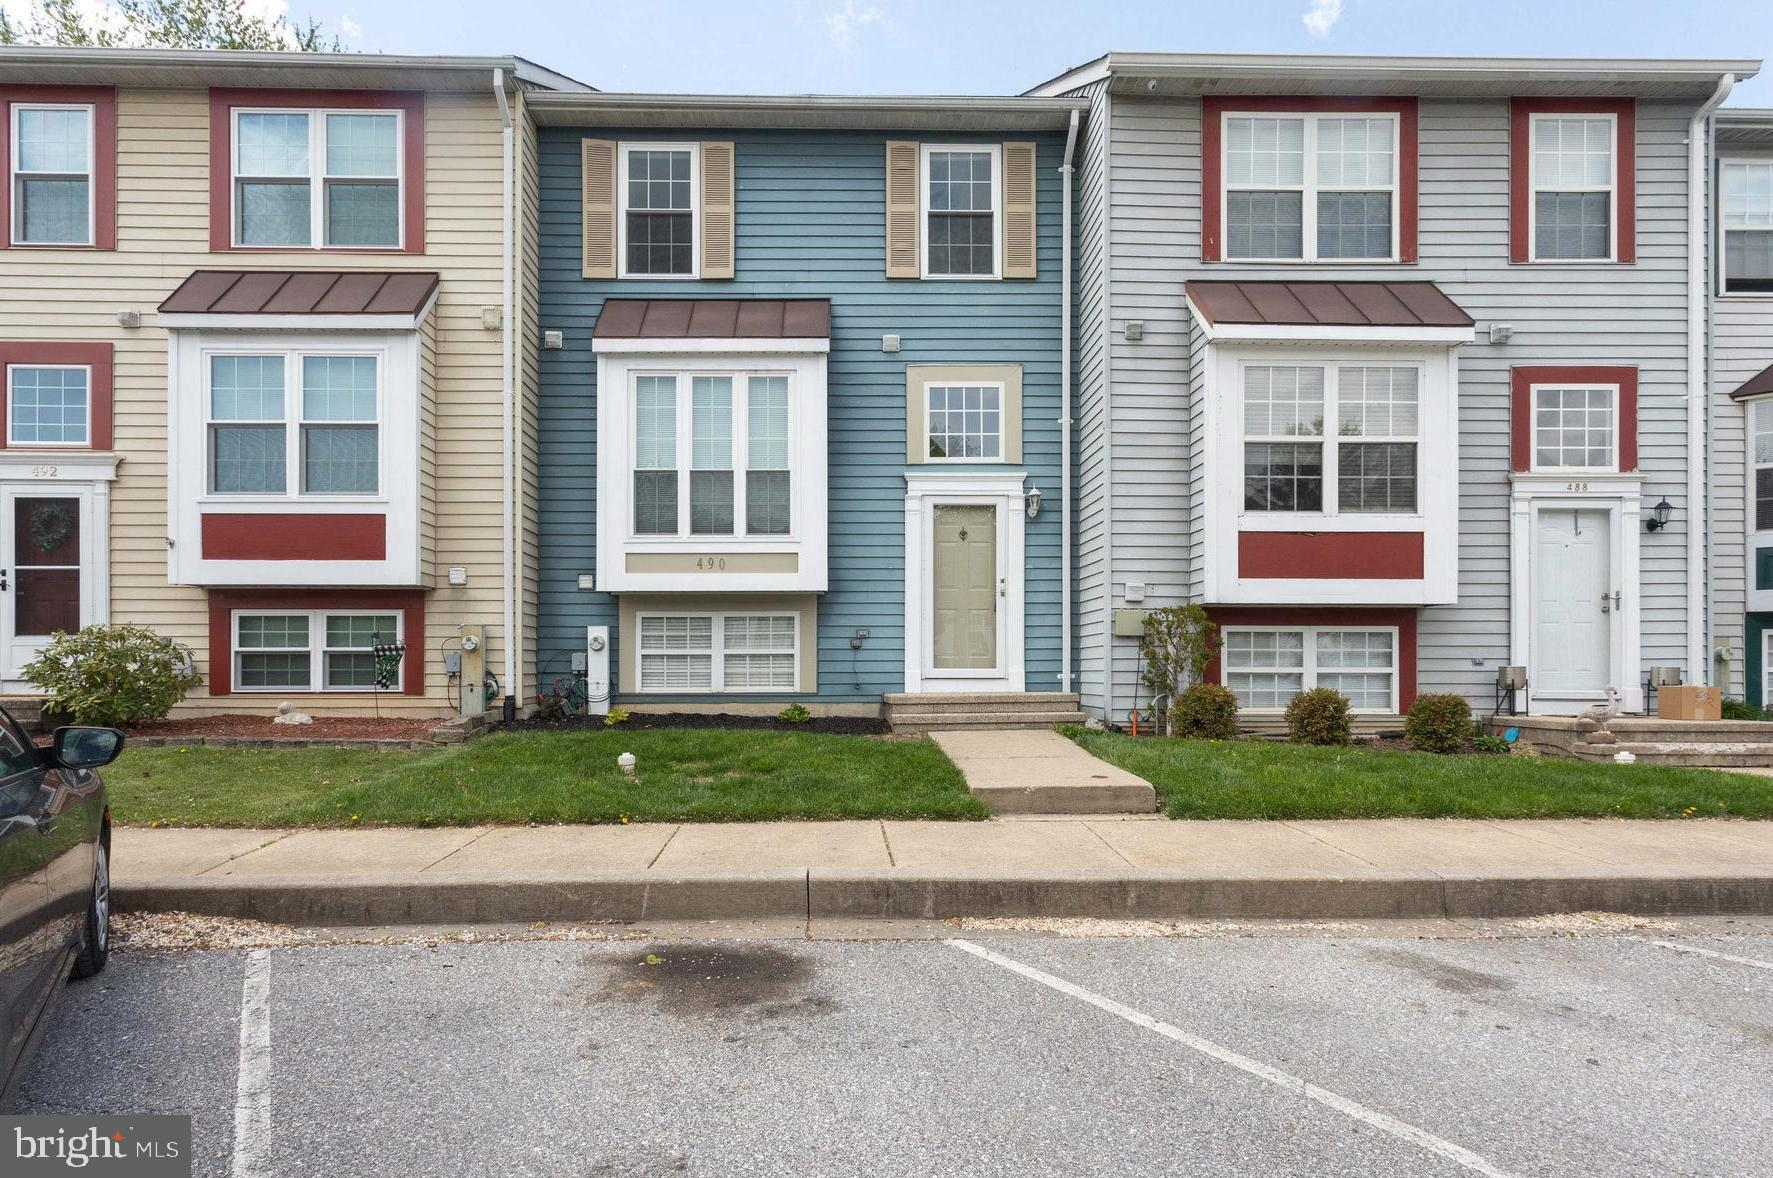 Well-maintained 3 bed, 1.5 bath townhome in a desirable neighborhood. Eat-in kitchen and open floor